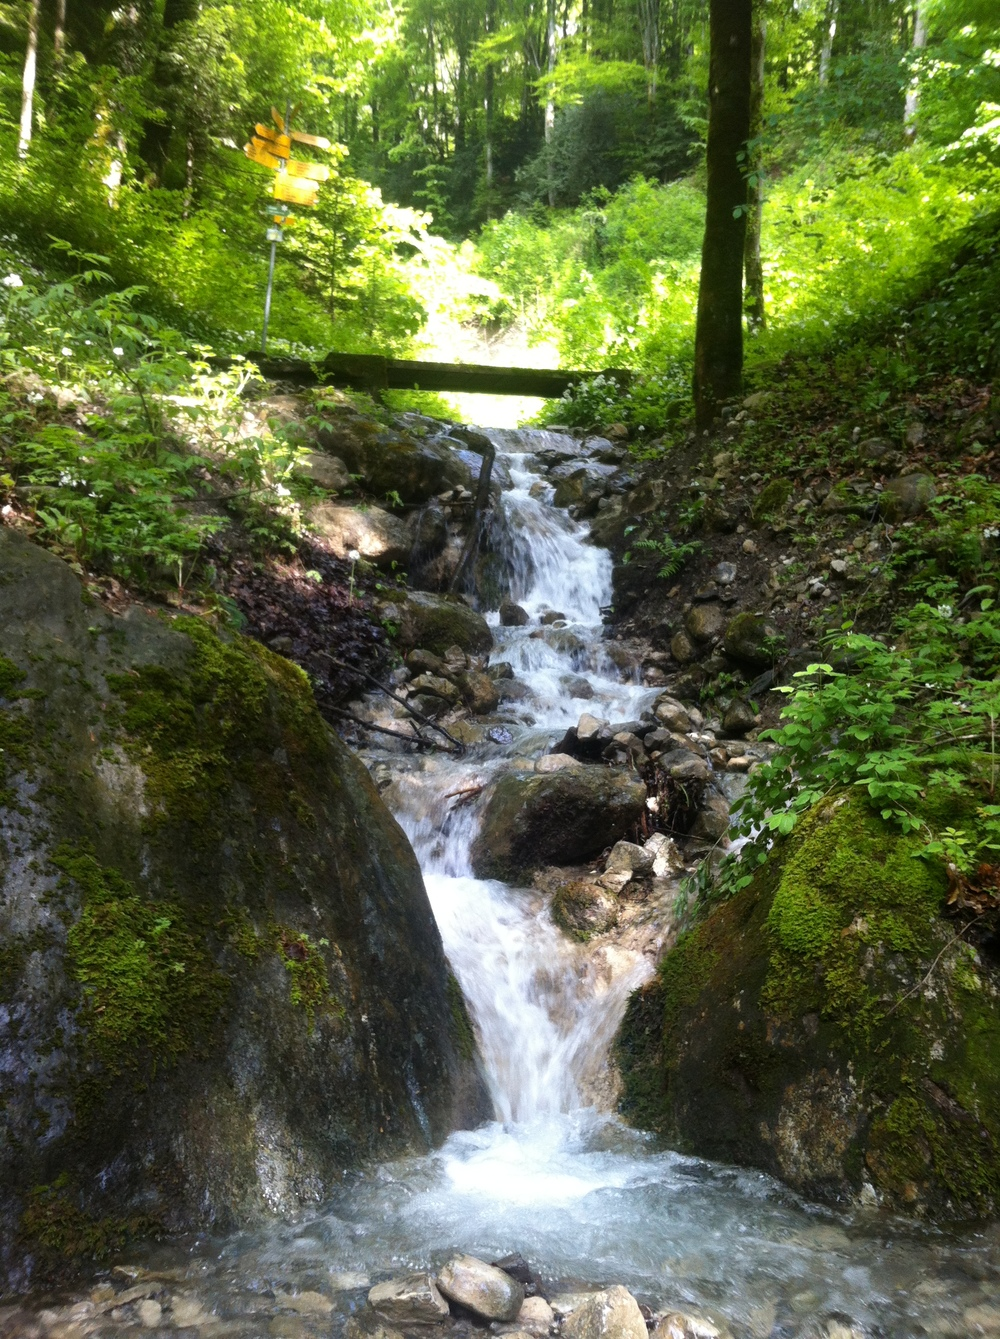 Gotta love a mini-waterfall:)